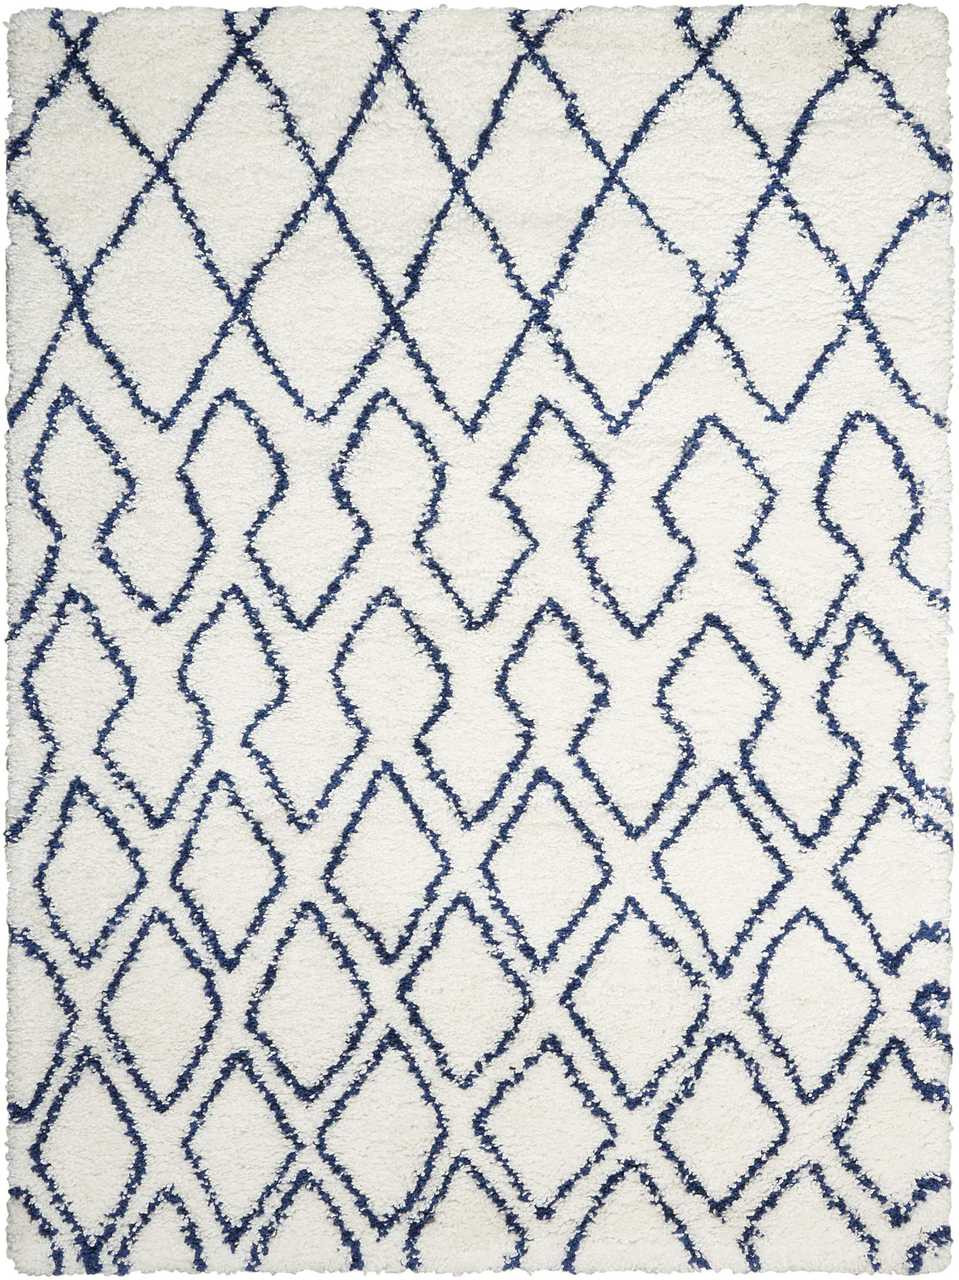 Calvin Klein Riad Ivory Navy Shag Area Rug By Nourison Free Shipping Rug Fashion Store